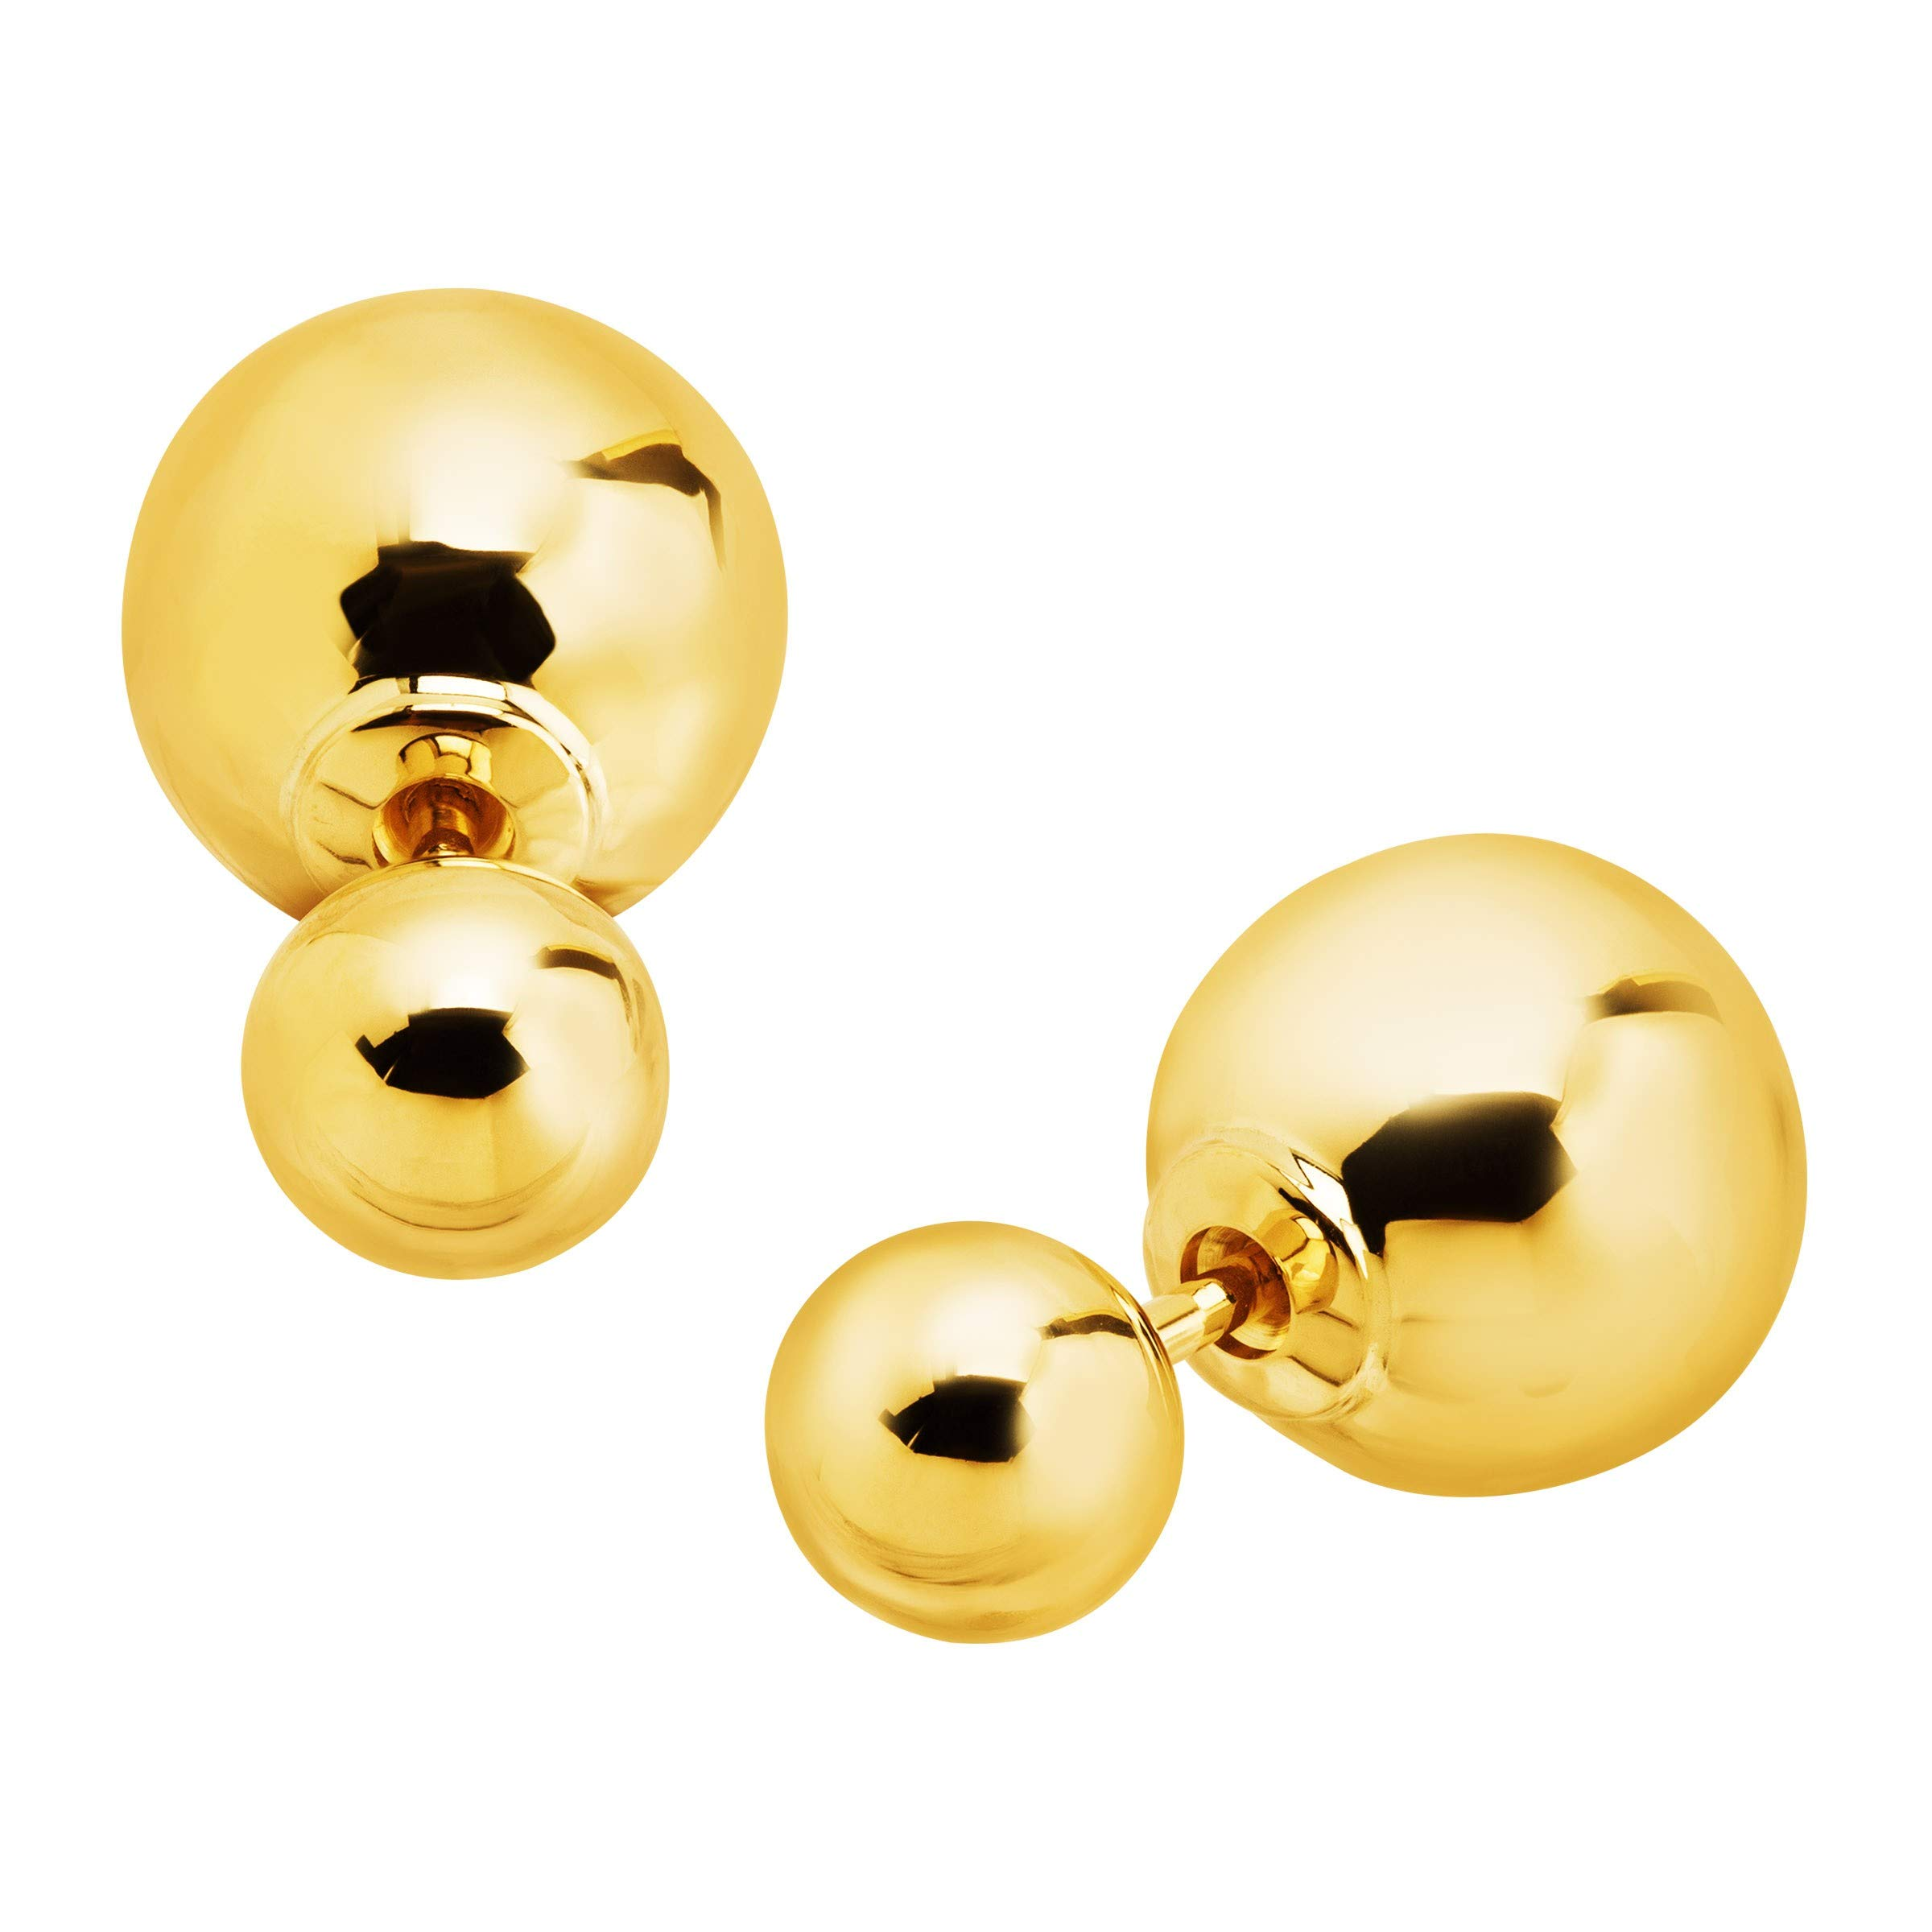 Eternity Gold Polished Double Ball Front-Back Stud Earrings in 14K Gold